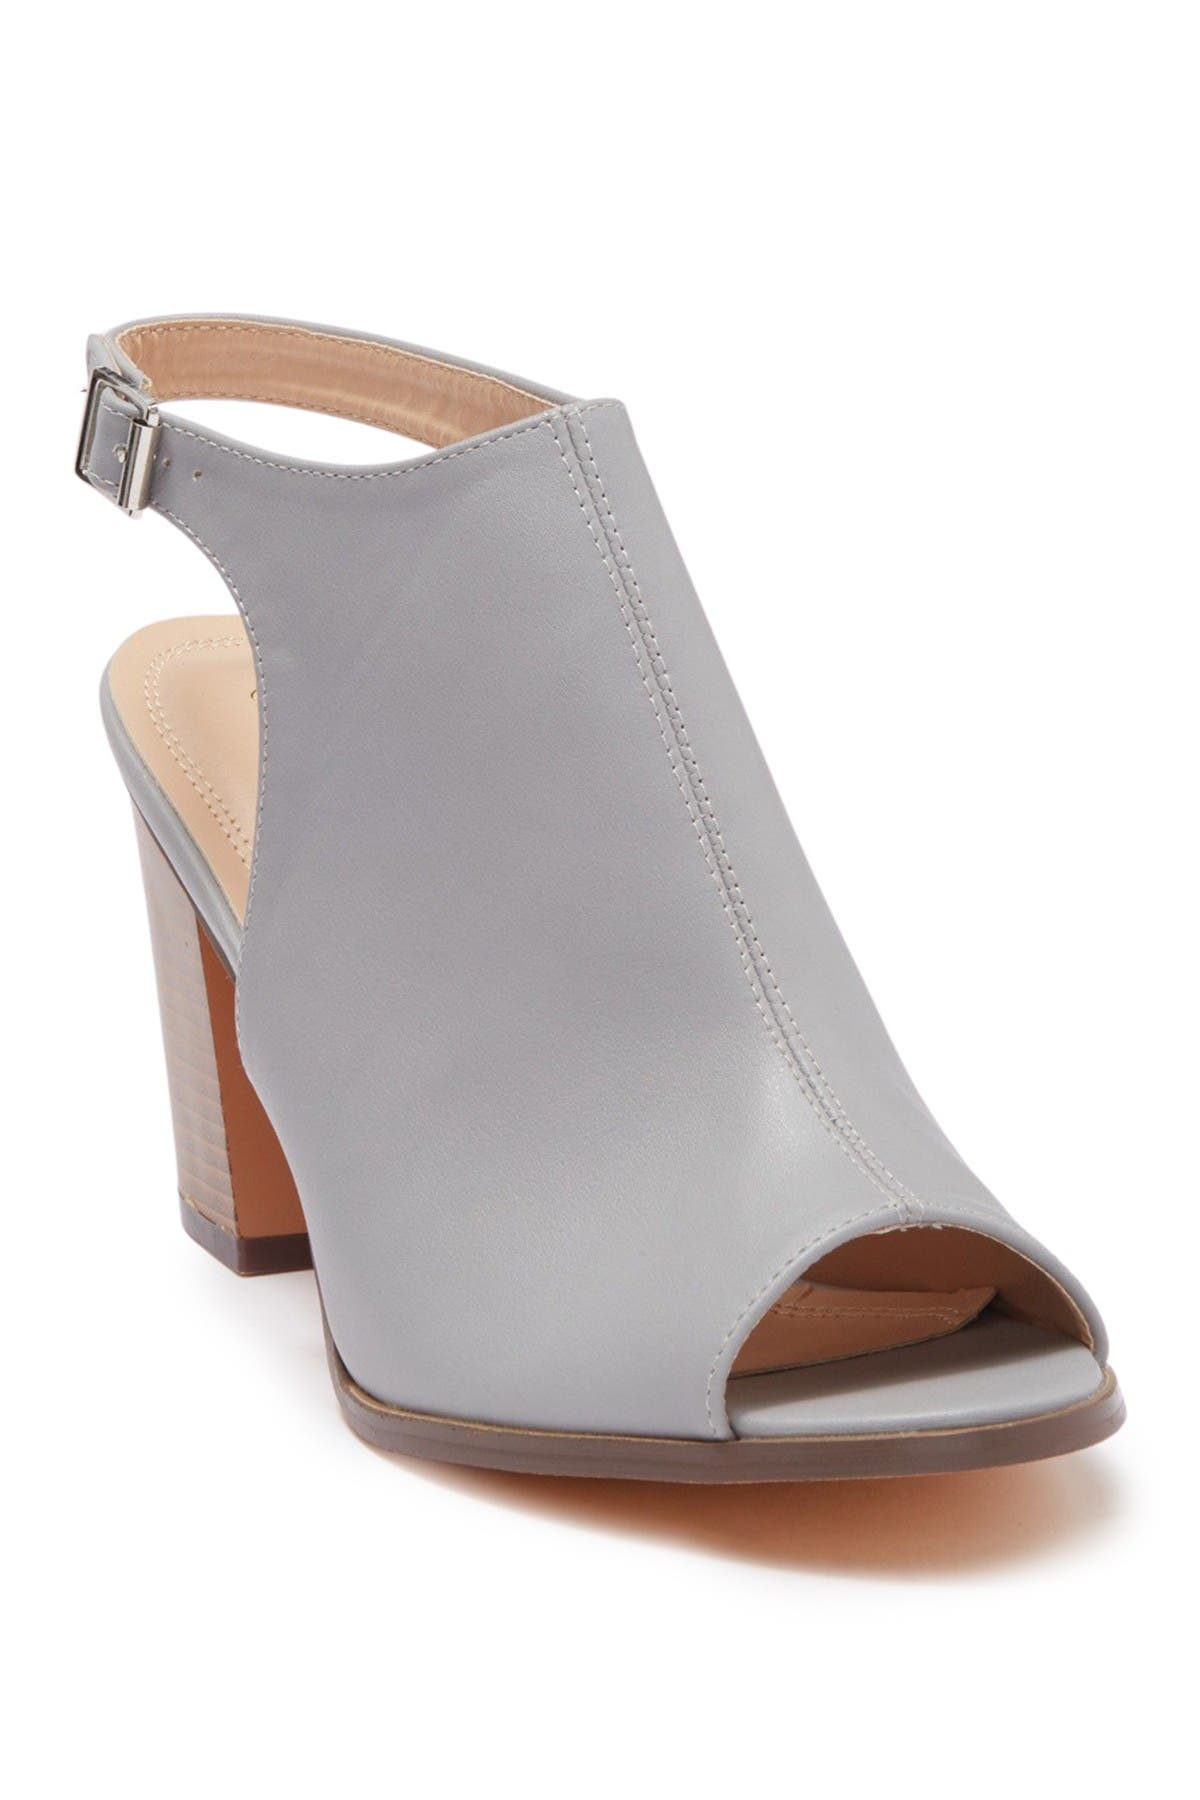 Image of Chase & Chloe Willy Peep Toe Sandal